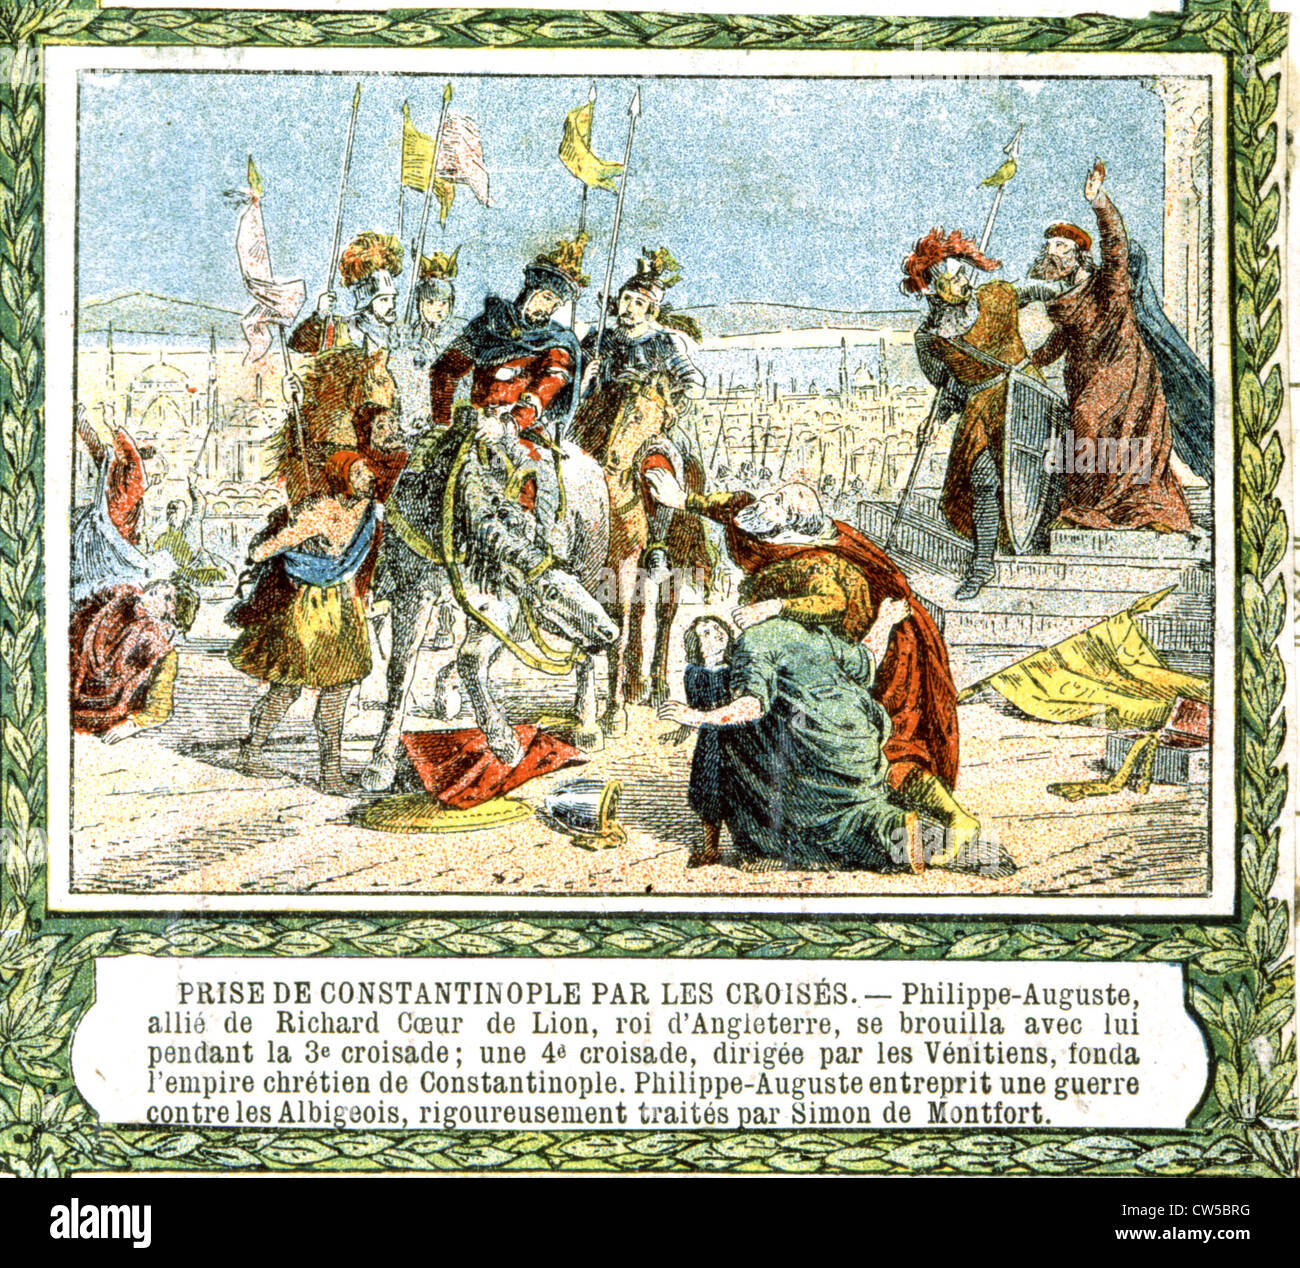 Third Crusade: Constantinople captured by the Crusaders - Stock Image